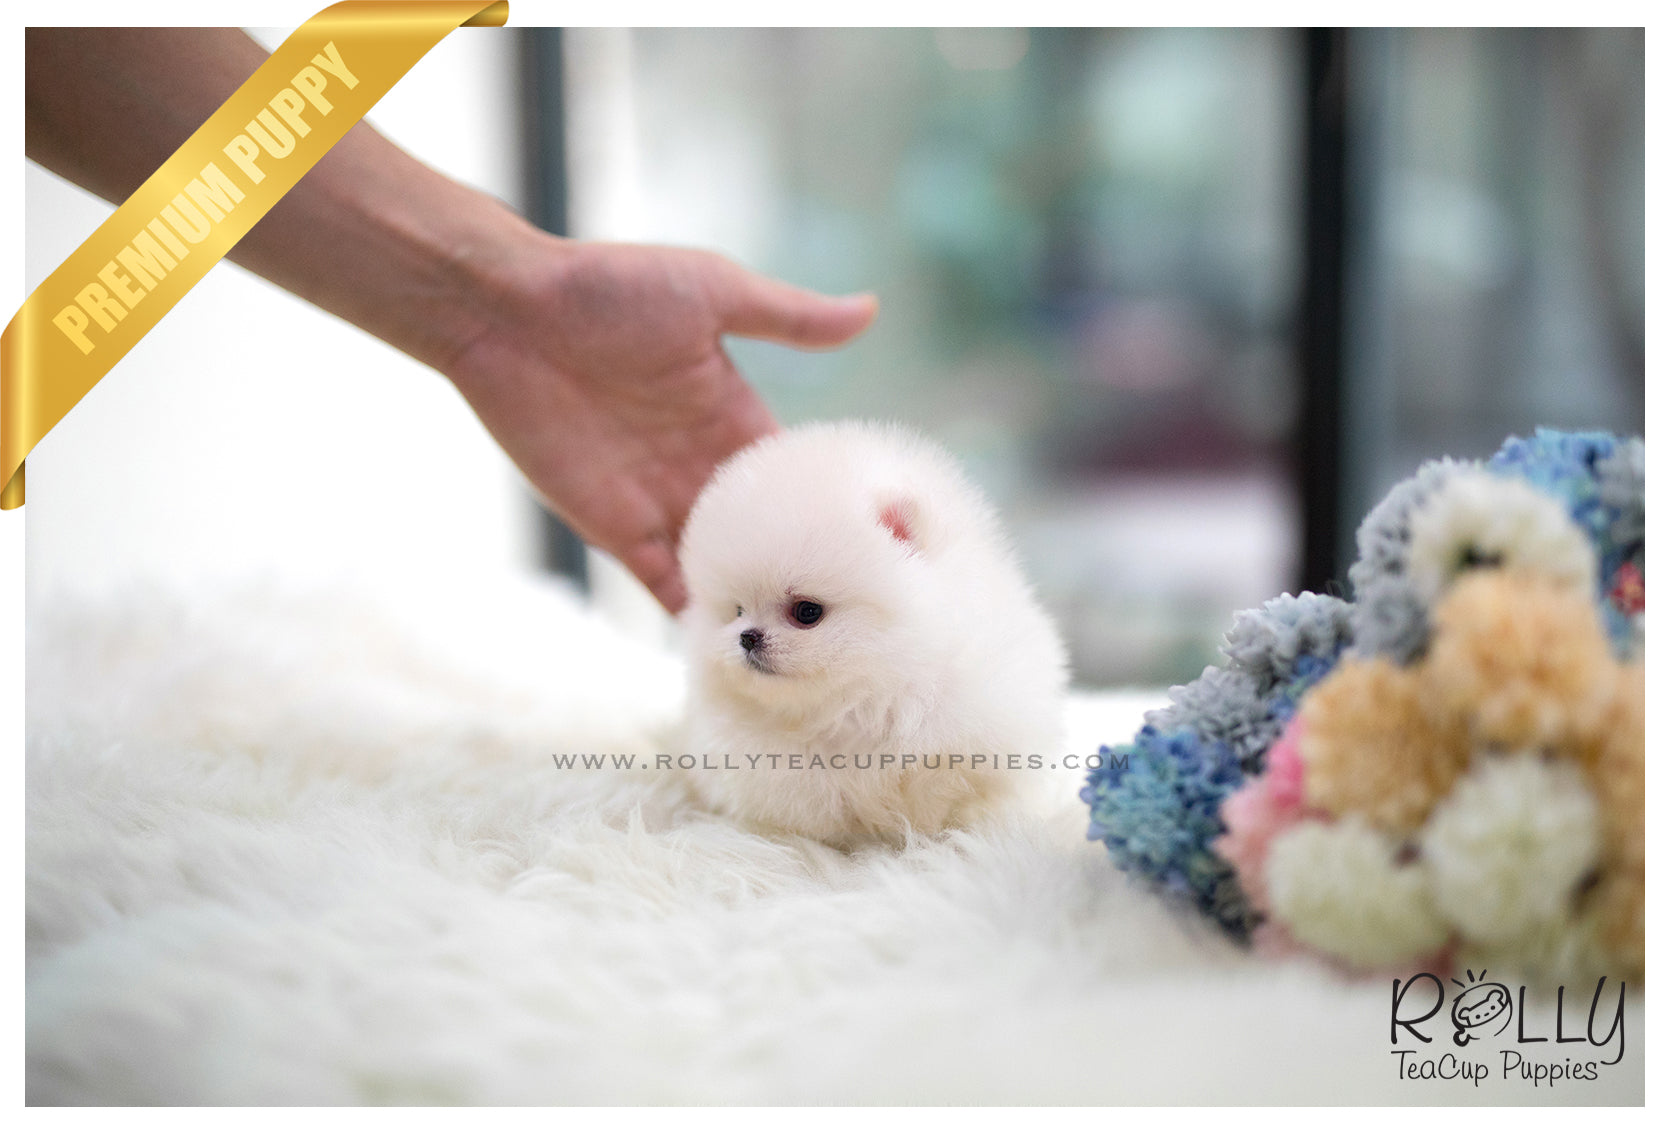 Sold To Chow Polar Bear Pomeranian M Rolly Teacup Puppies